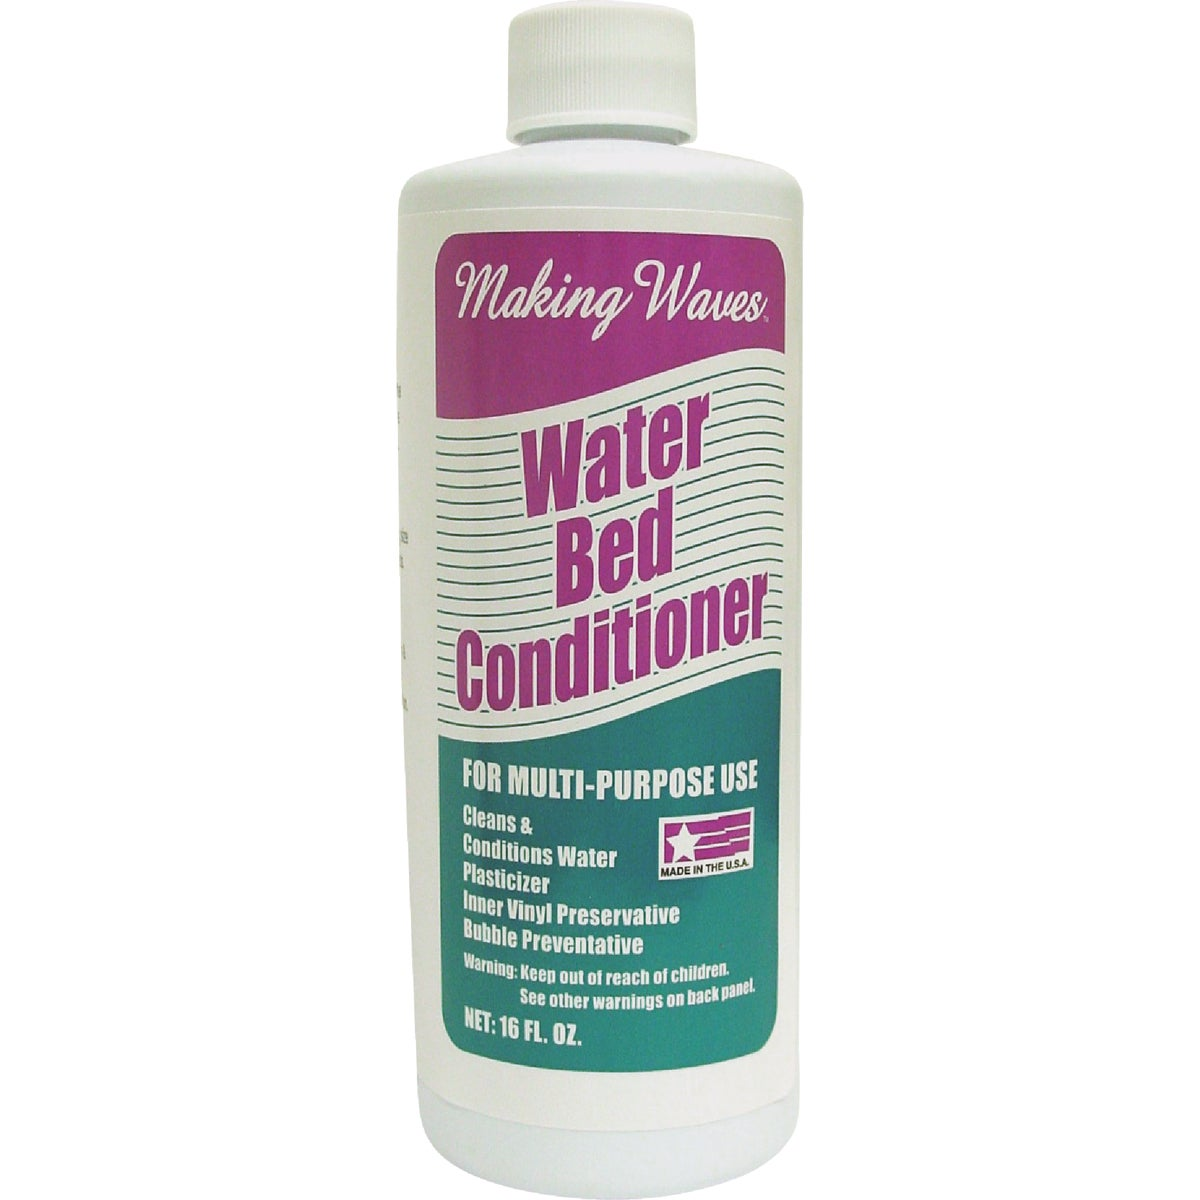 16OZ WATRBED CONDITIONER - 1WC by Rps Products Inc